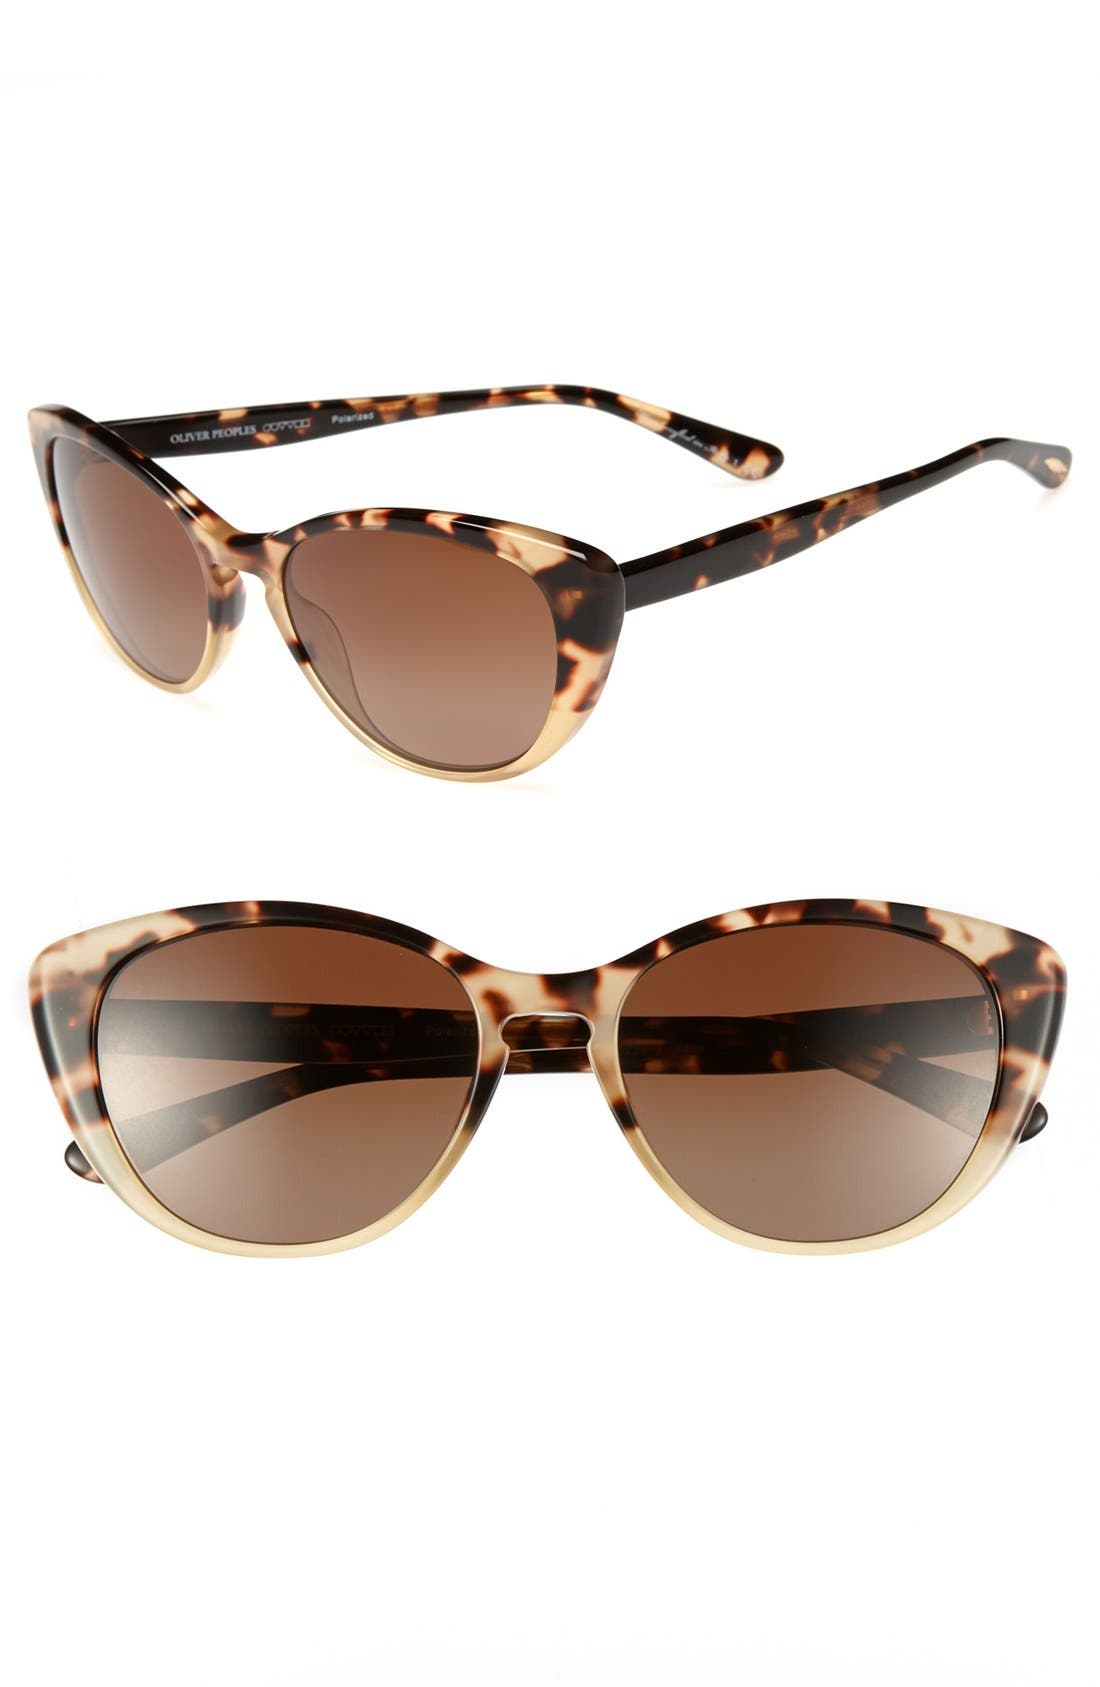 Main Image - Oliver Peoples 'Haley' 55mm Polarized Sunglasses